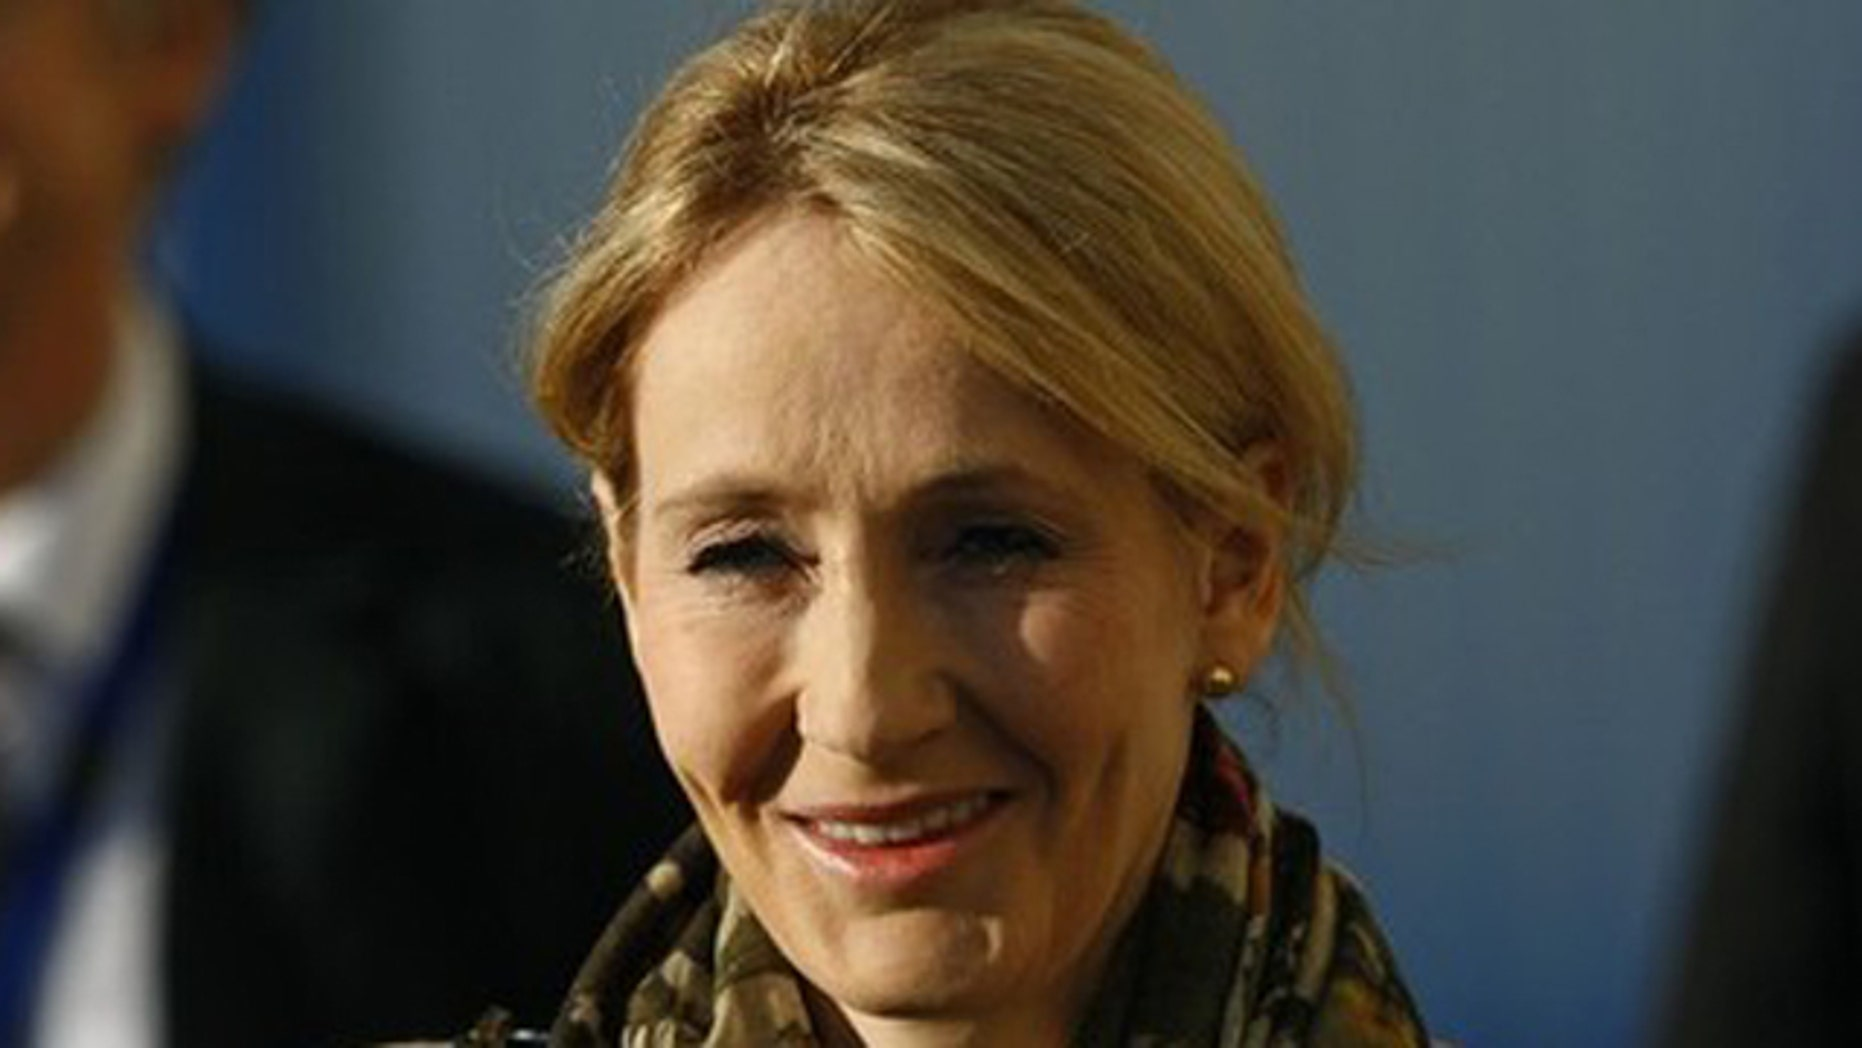 Nov. 7, 2011: J.K. Rowling, author of Harry Potter, arrives for a ceremony to mark the start of building work on a research clinic, at the University of Edinburgh in Scotland.